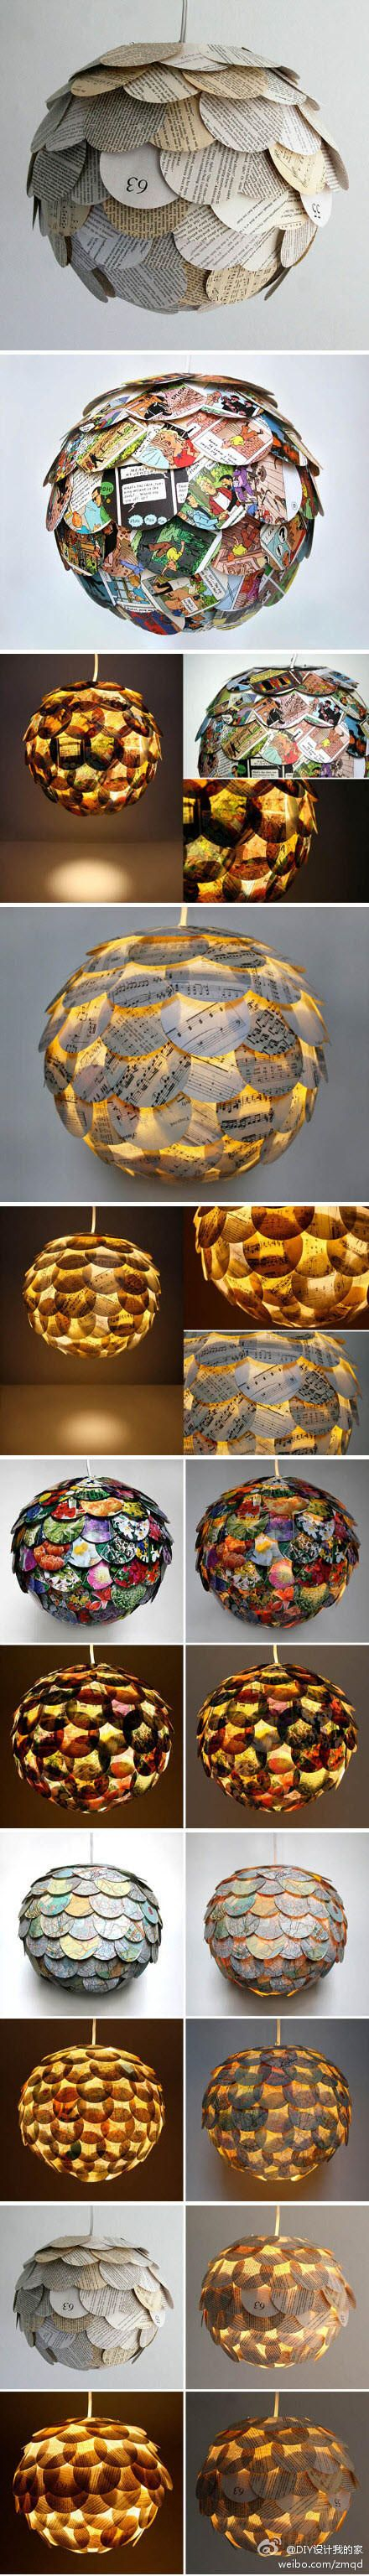 Craft paper lamp shades - Find This Pin And More On Lamp Designs